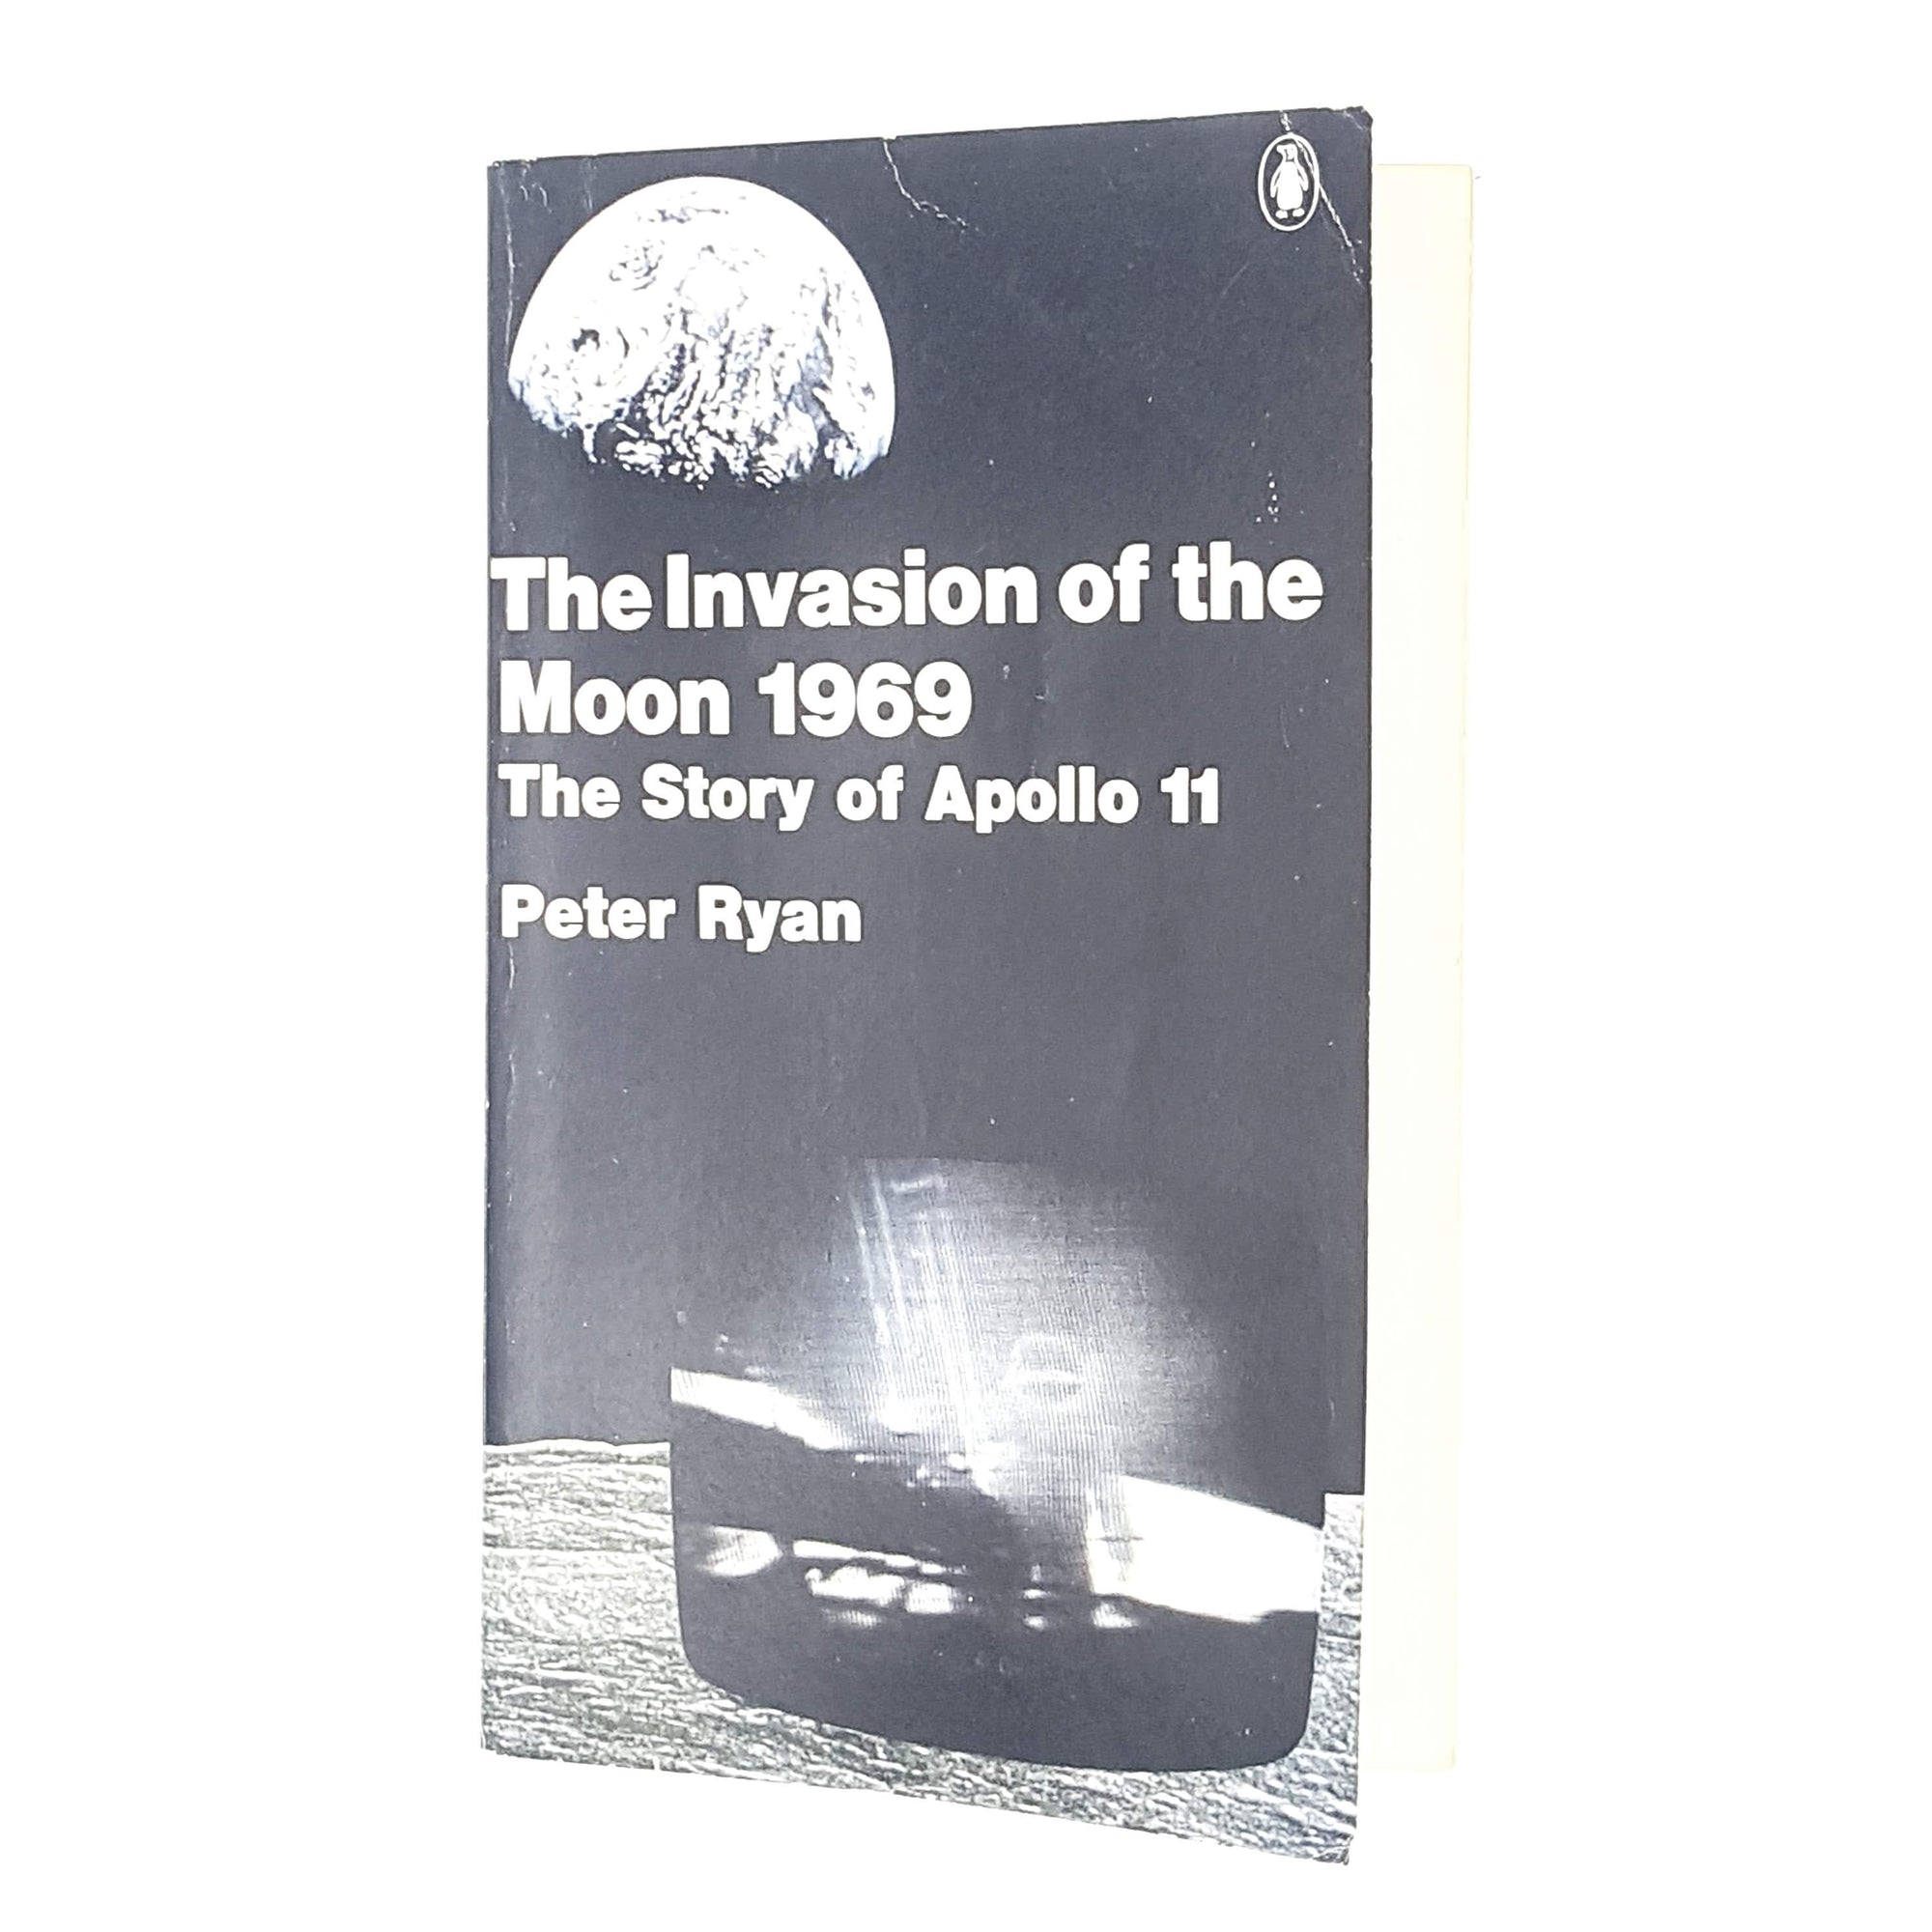 First Edition Penguin: The Invasion of the Moon by Peter Ryan 1969